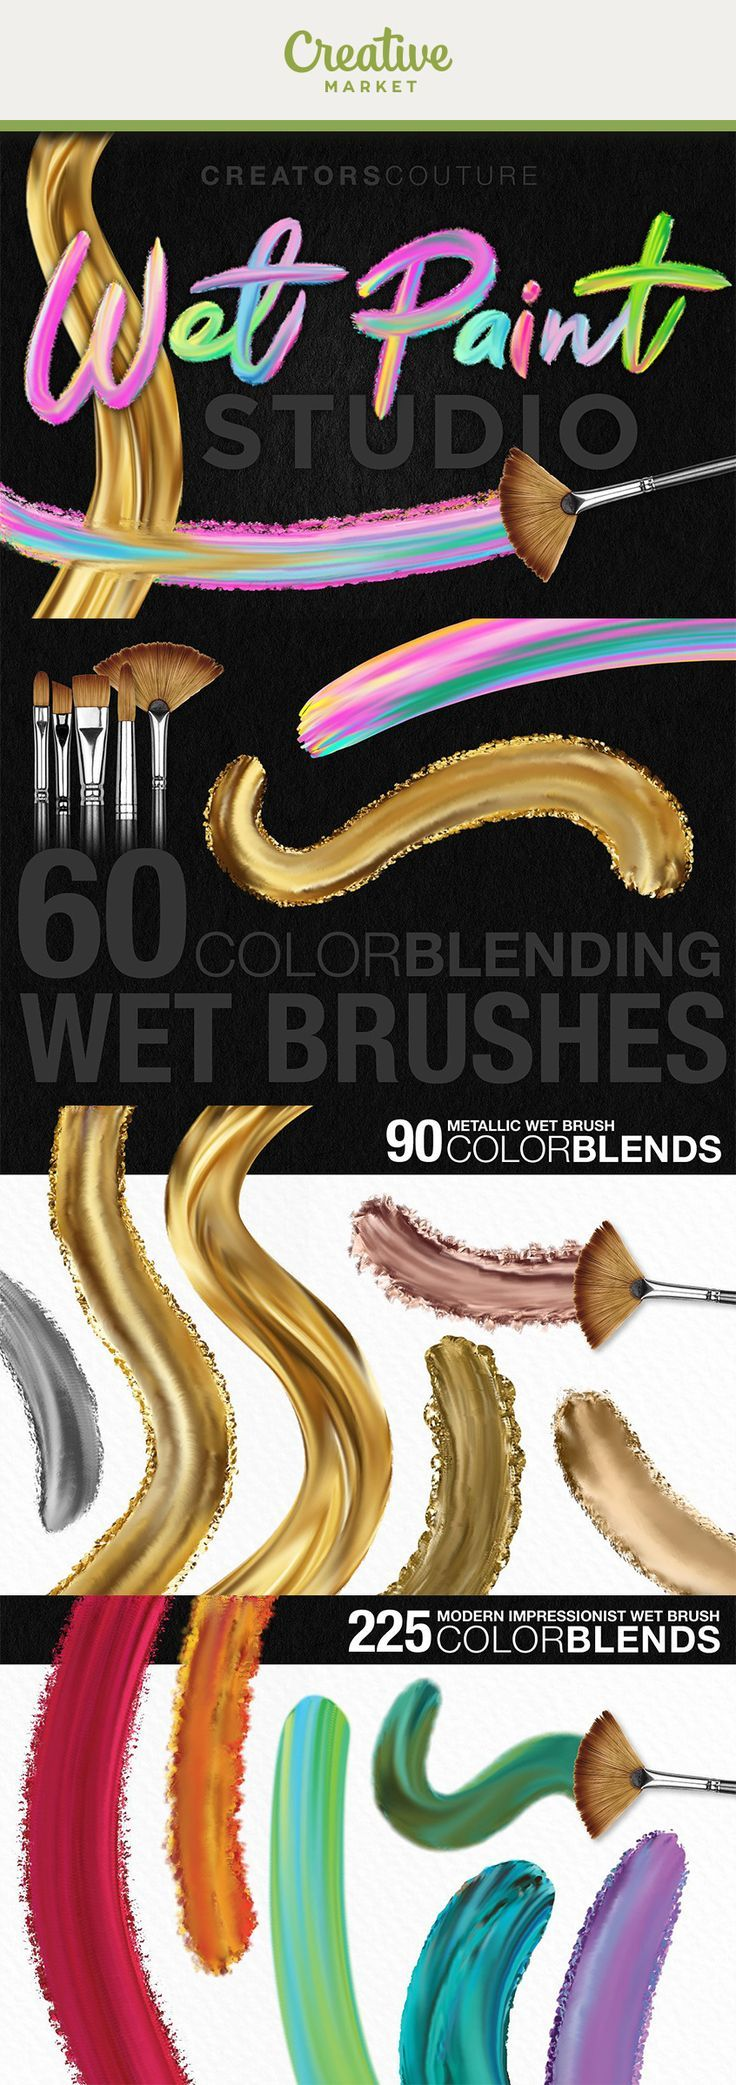 Ad: HUGE collection of60 mixer photoshop brushesand615 palettes(which you don't even have to load!) will allow you to pick up a brush and paint in beautifulmulti-color, metallic and iridescent strokes, allowing you to create designs, illustrations, h